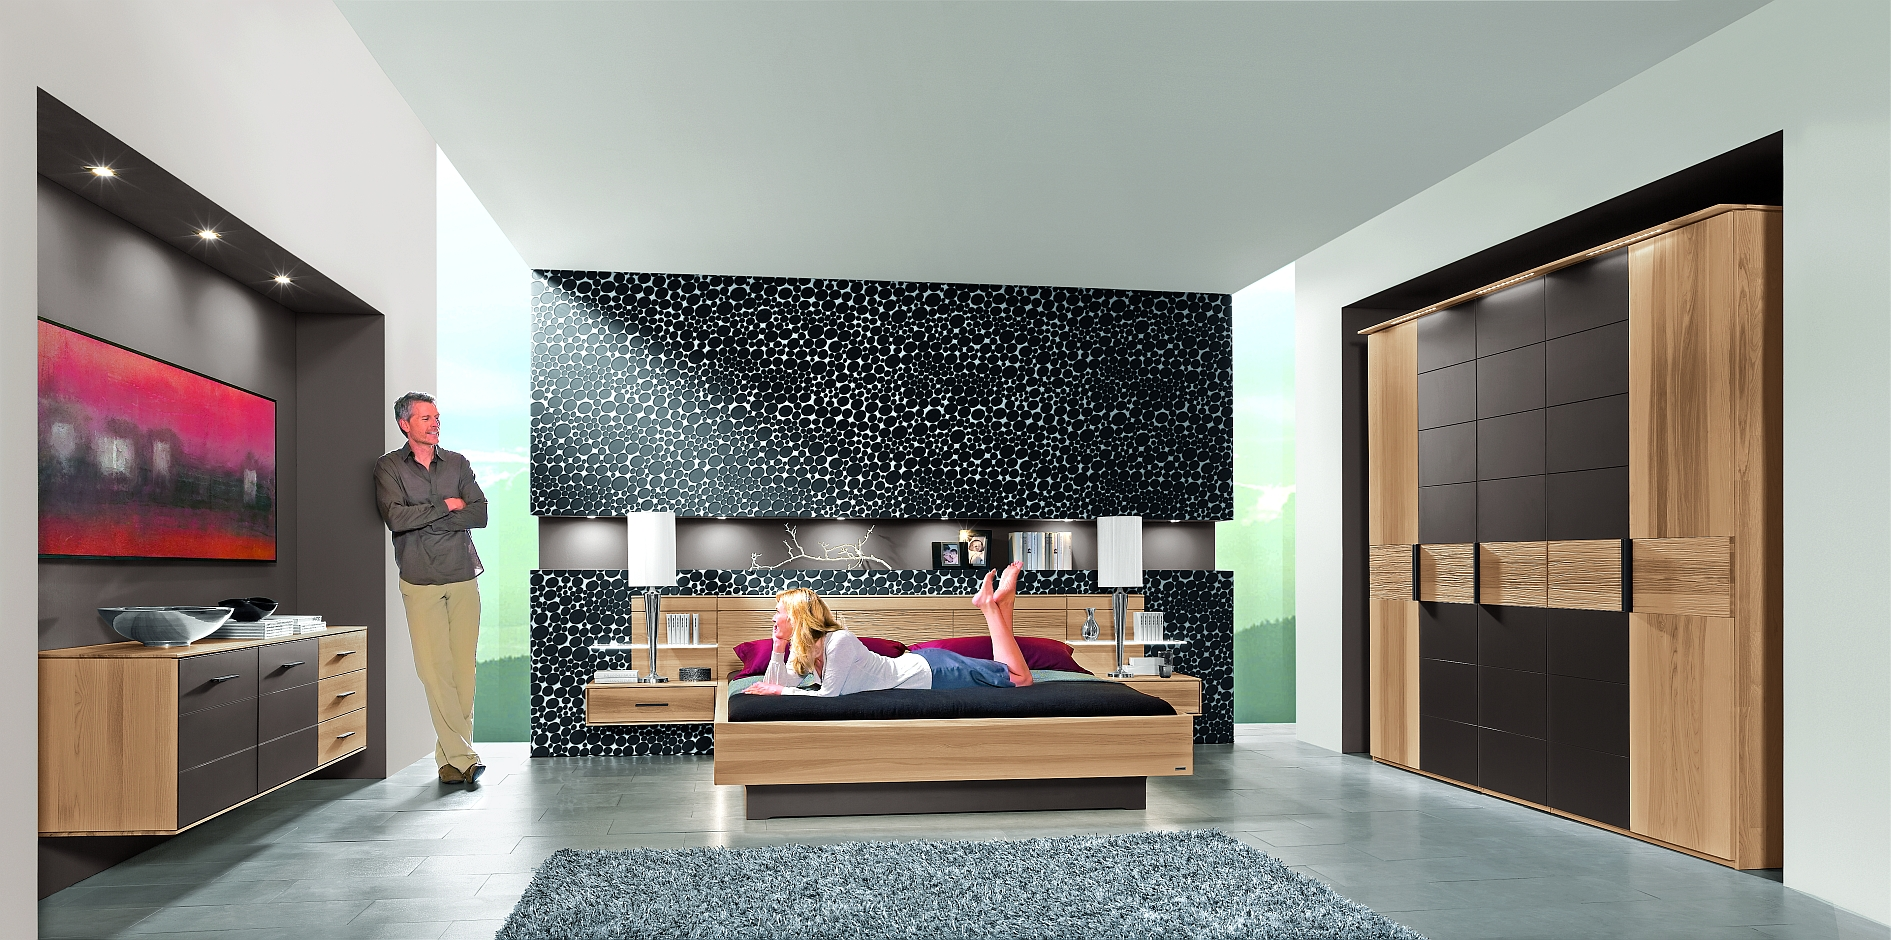 bigcheeks feng shui schlafzimmer einrichten schlafzimmer thielemeyer m bel boss schlafzimmer. Black Bedroom Furniture Sets. Home Design Ideas